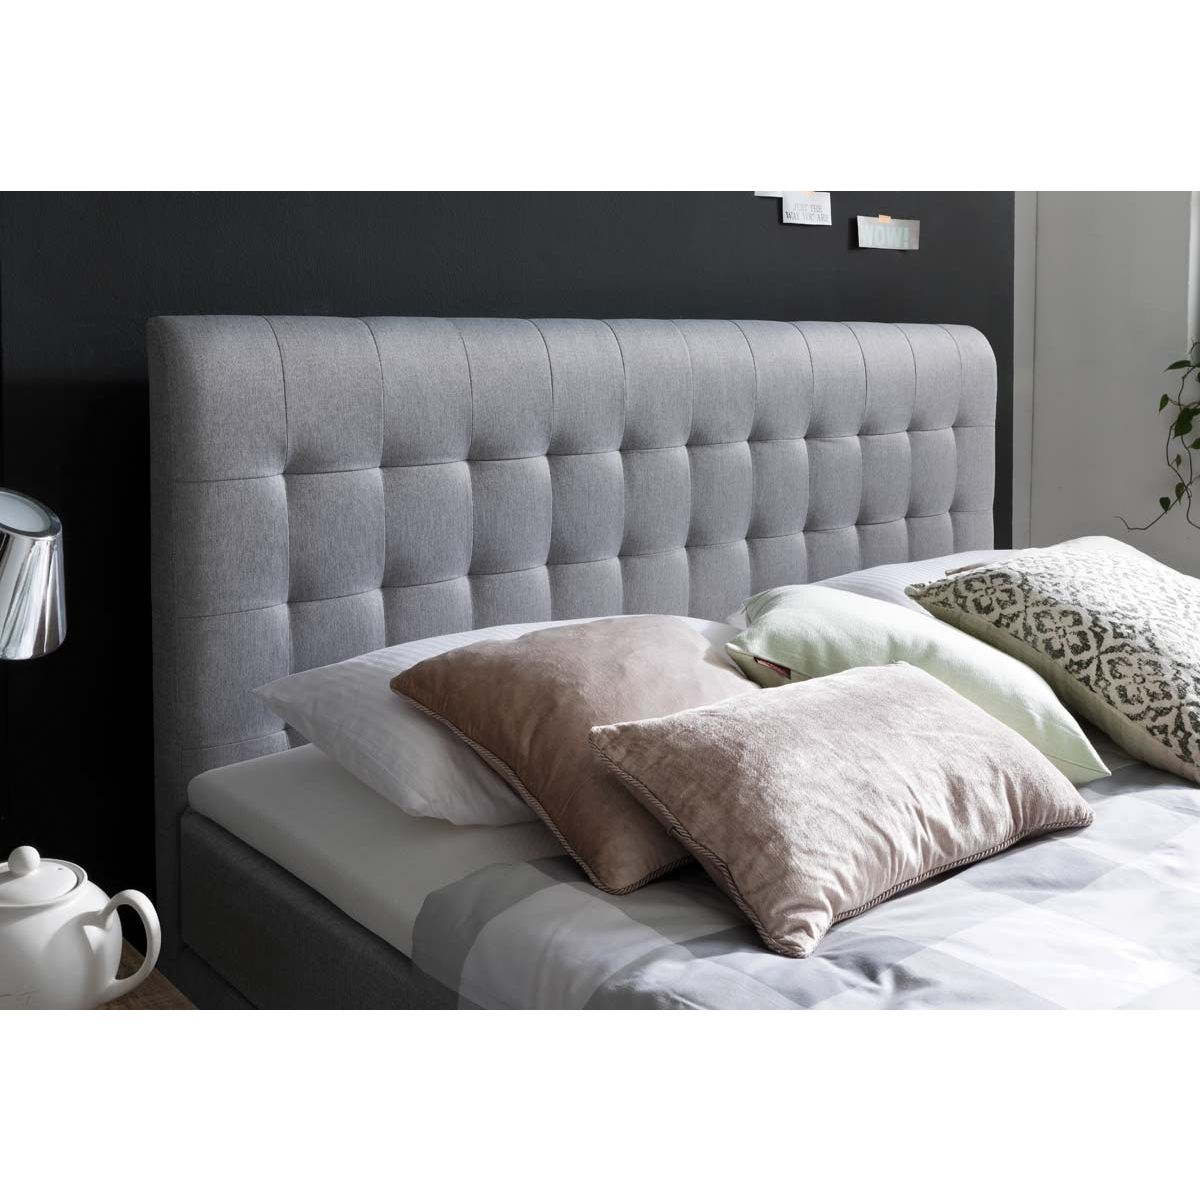 meise m bel massello boxspringbett hellgrau mit lieferung. Black Bedroom Furniture Sets. Home Design Ideas